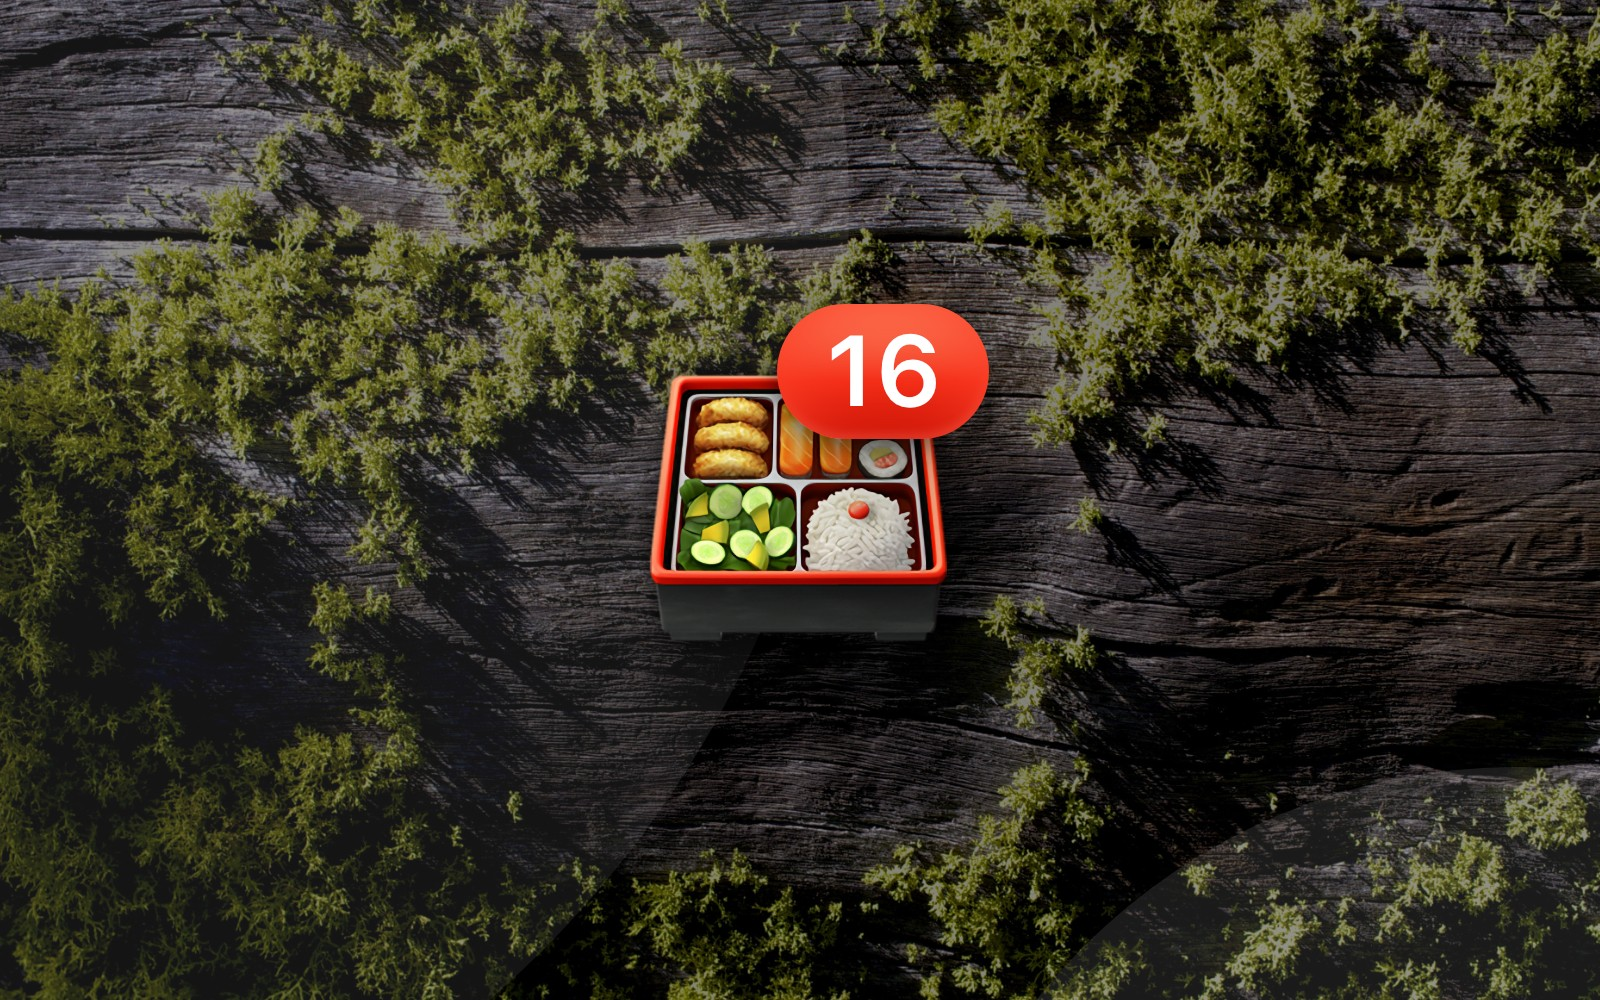 Bento box emoji with number 16 badge resting on a mossy wood background